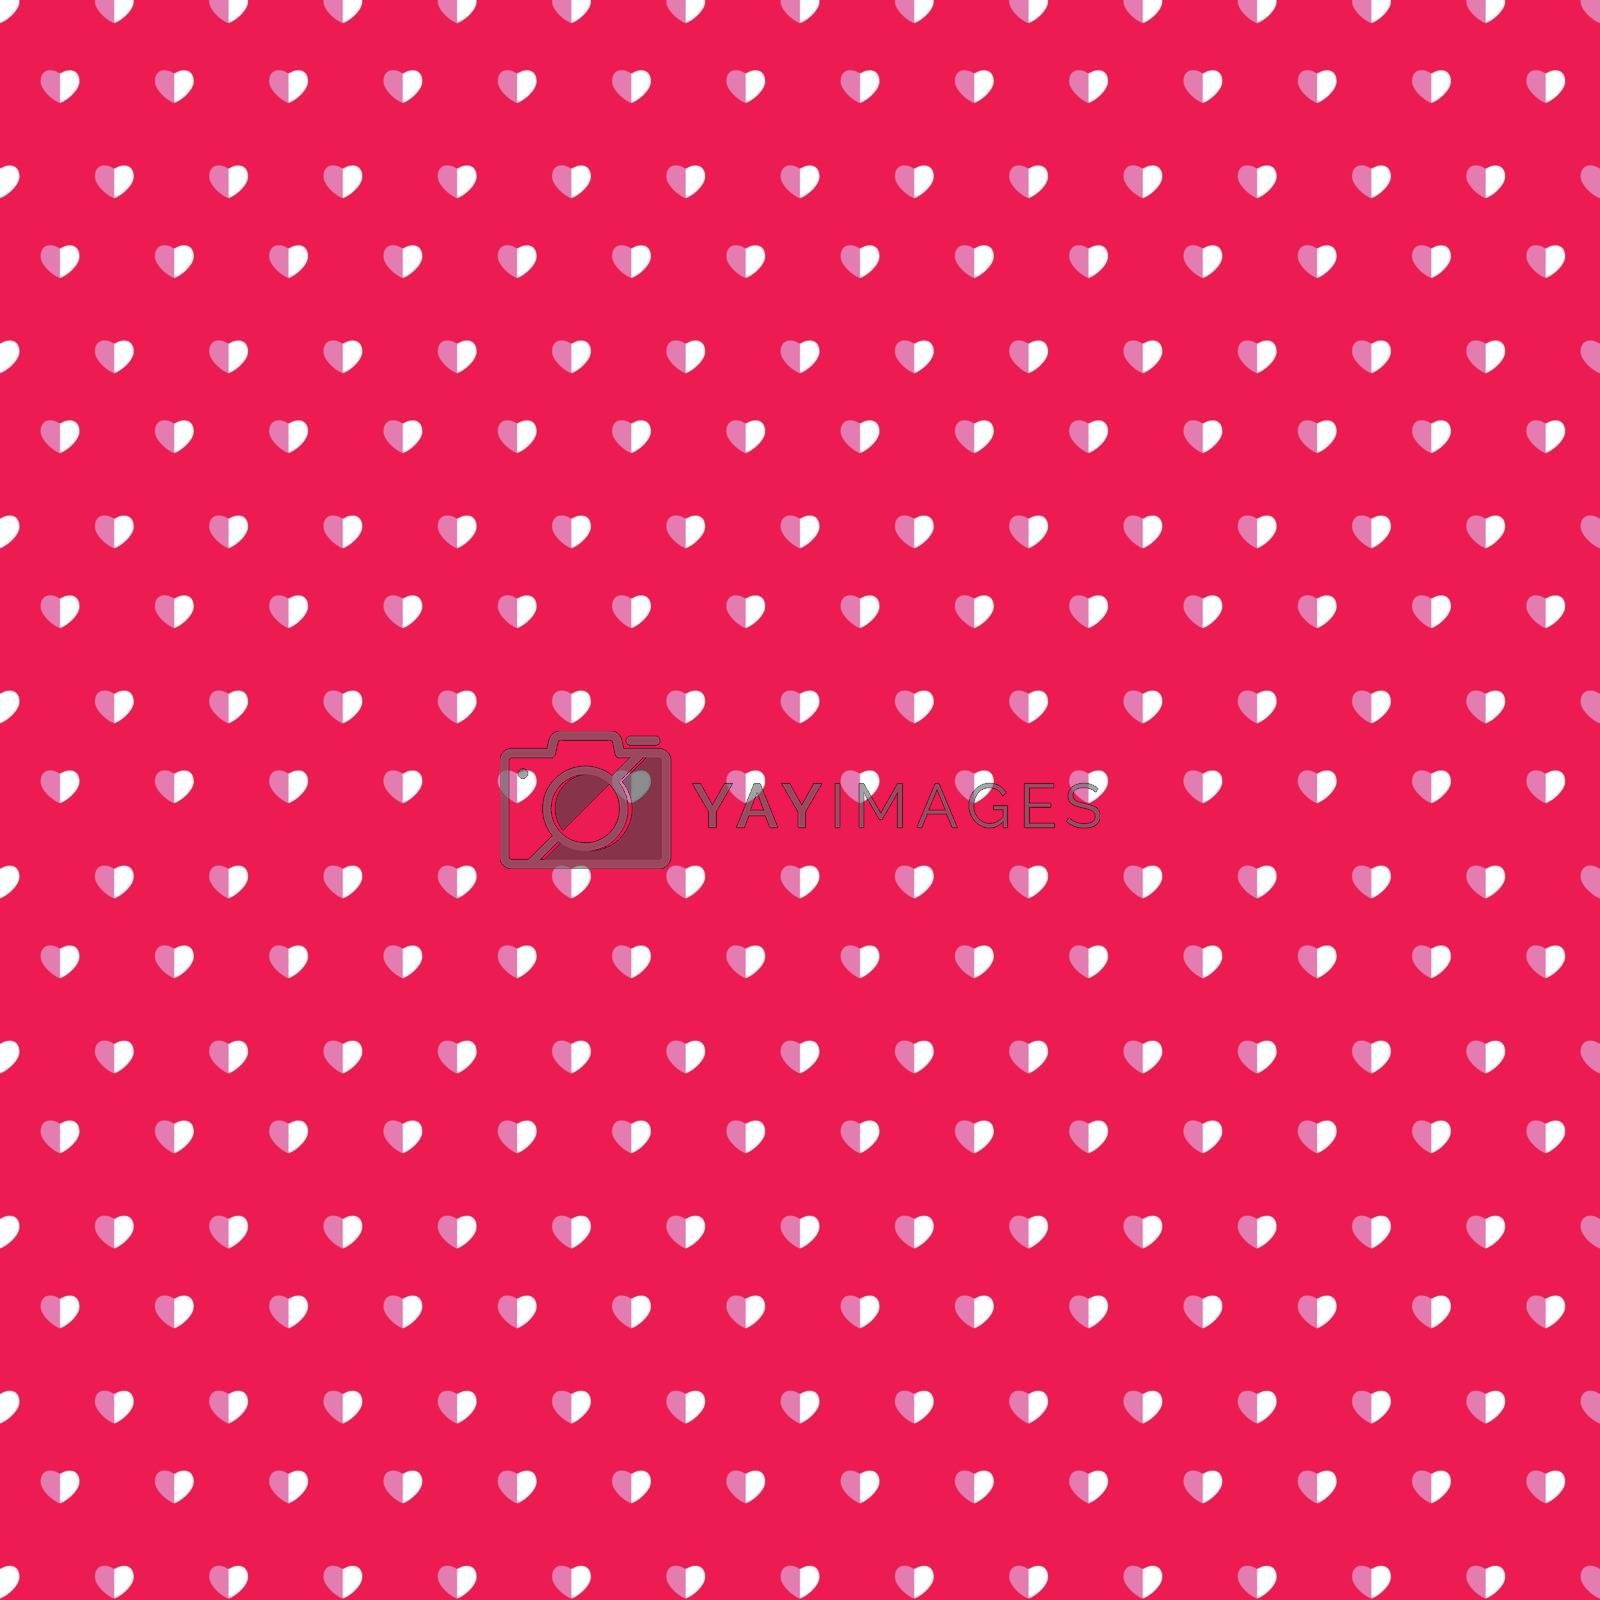 Happy valentines day white paper cut hearts pattern on pink background. vector illustration